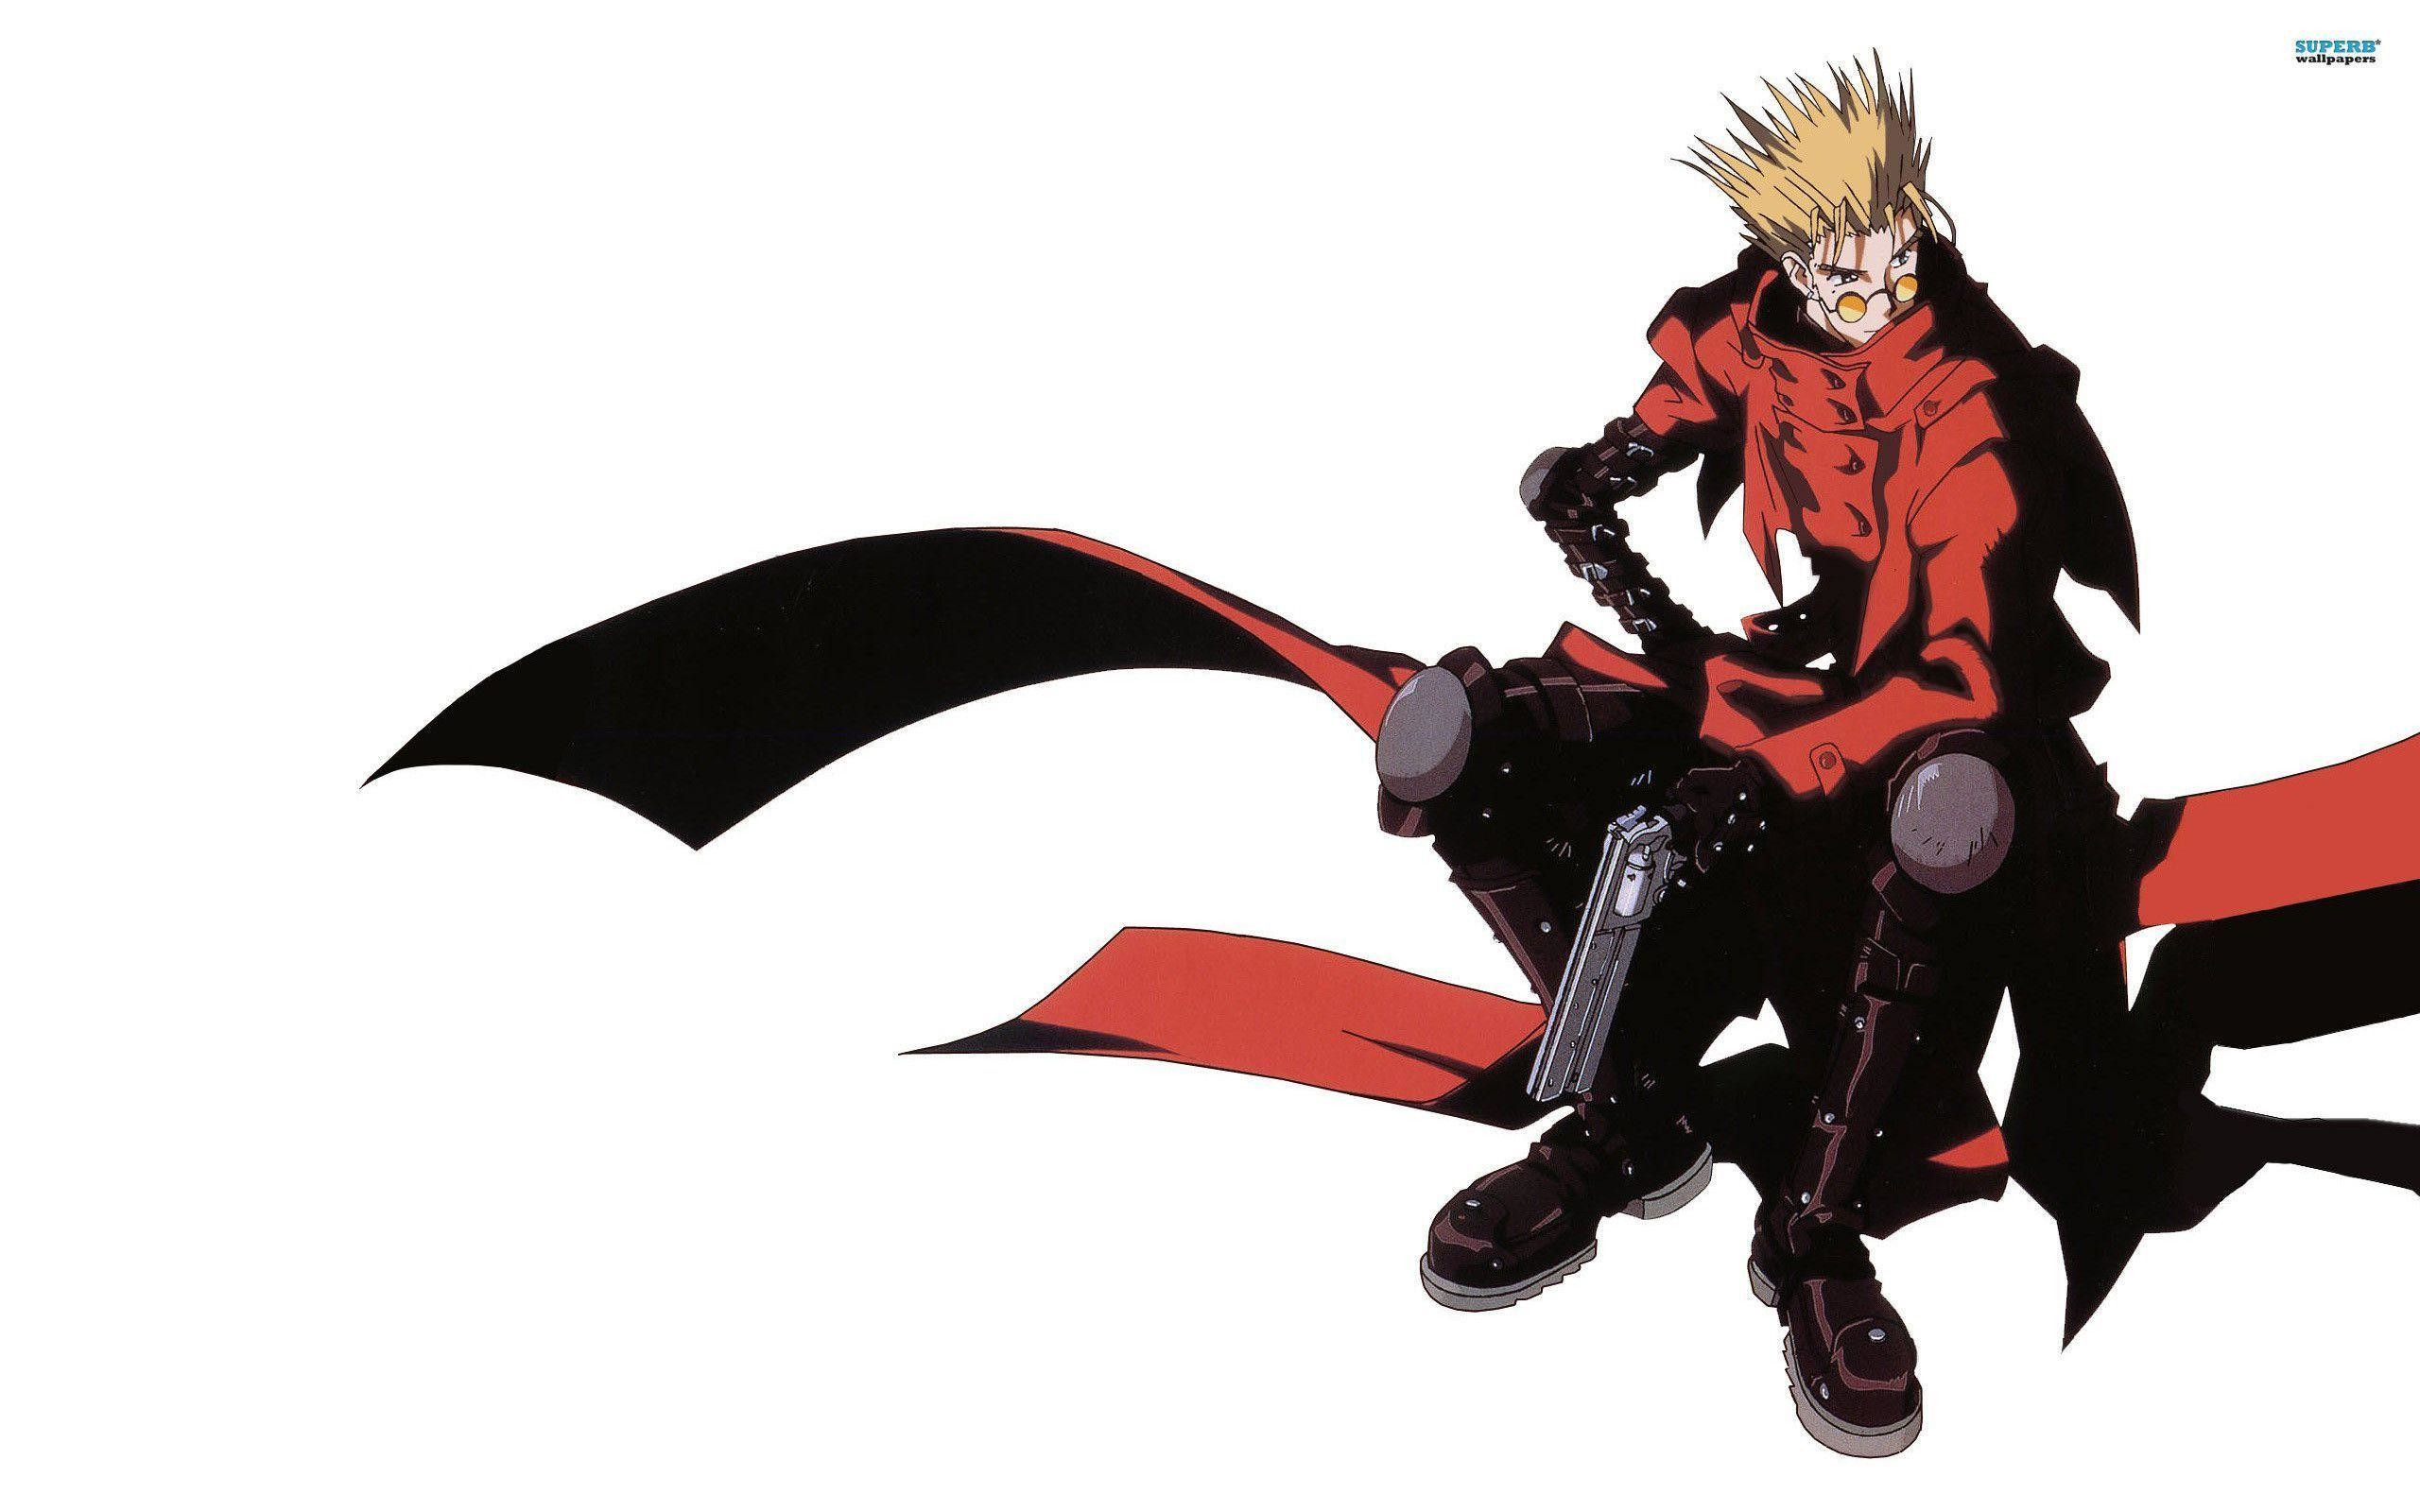 Wallpapers For > Vash The Stampede Wallpaper